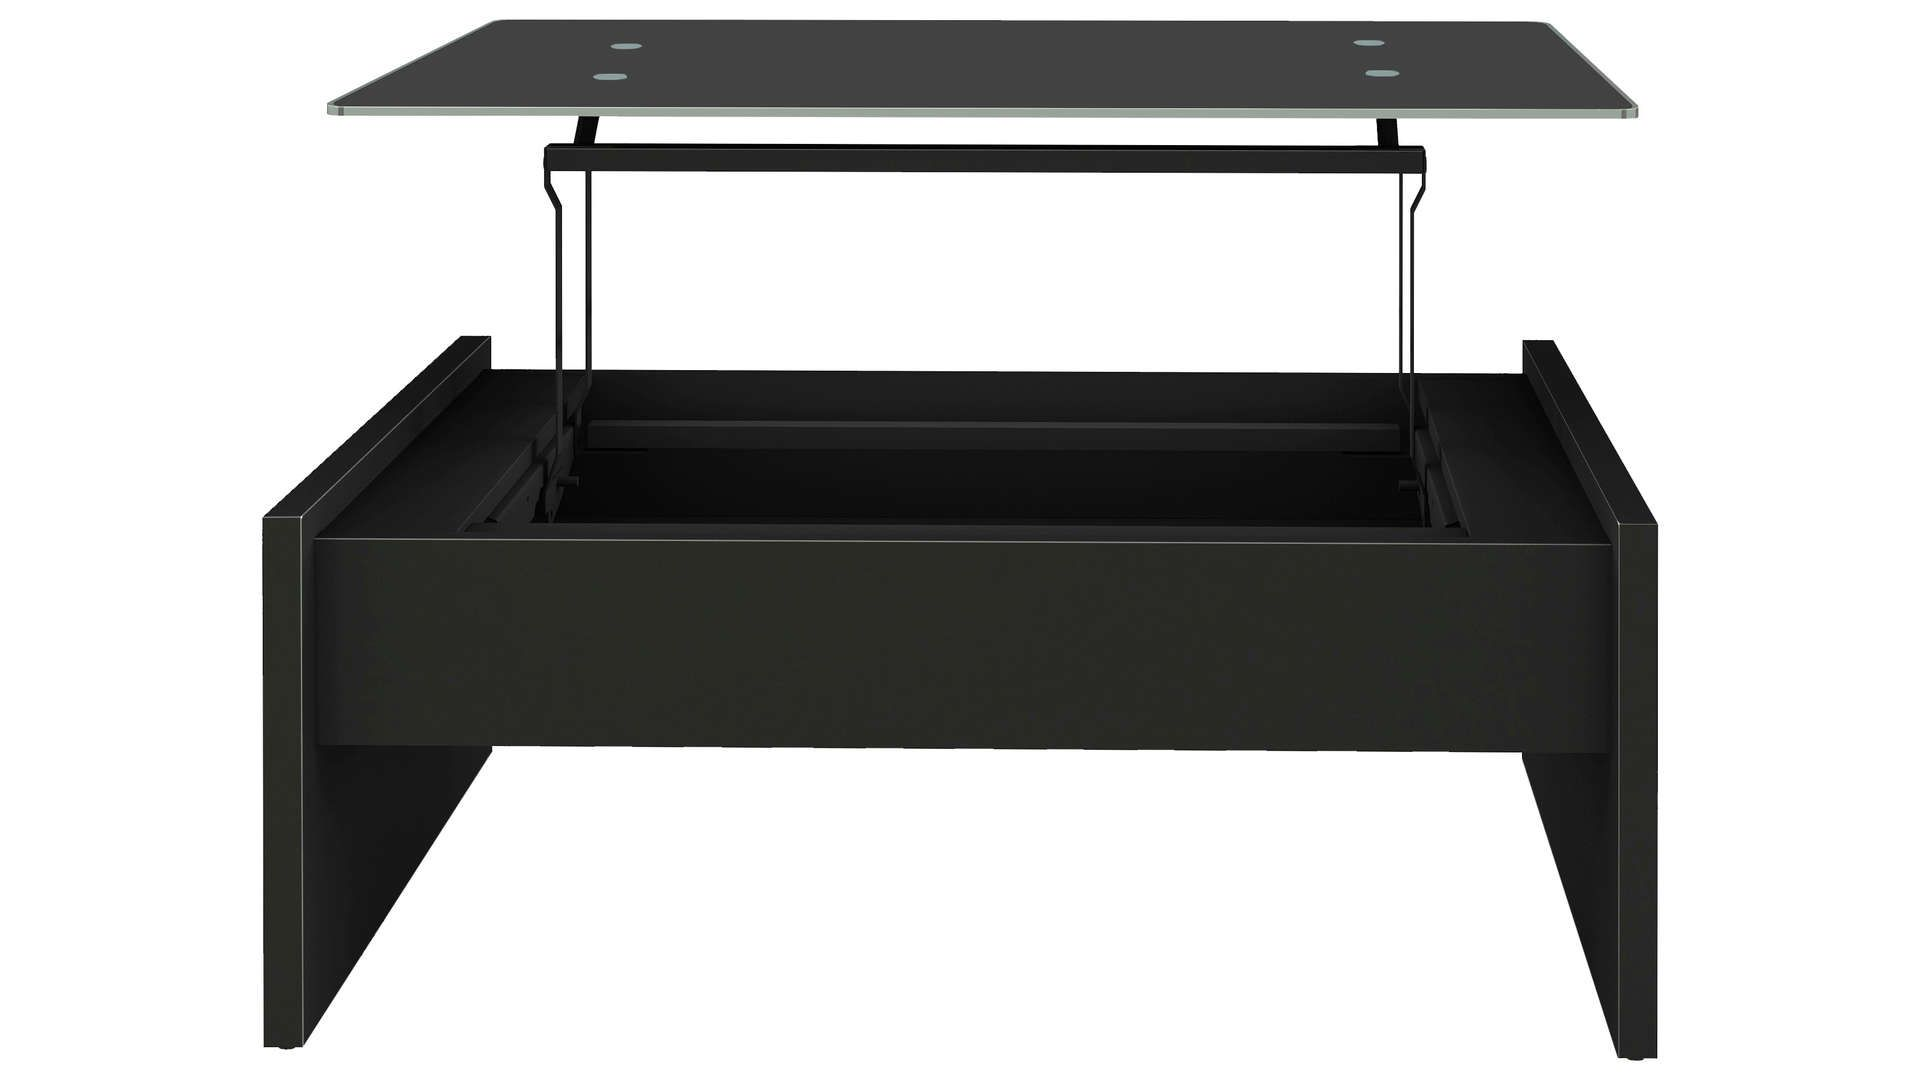 Table Basse Rectangulaire Avec Plateau Relevable Lexie Coloris Noir Table Basse Rectangulaire Table Basse Et Table